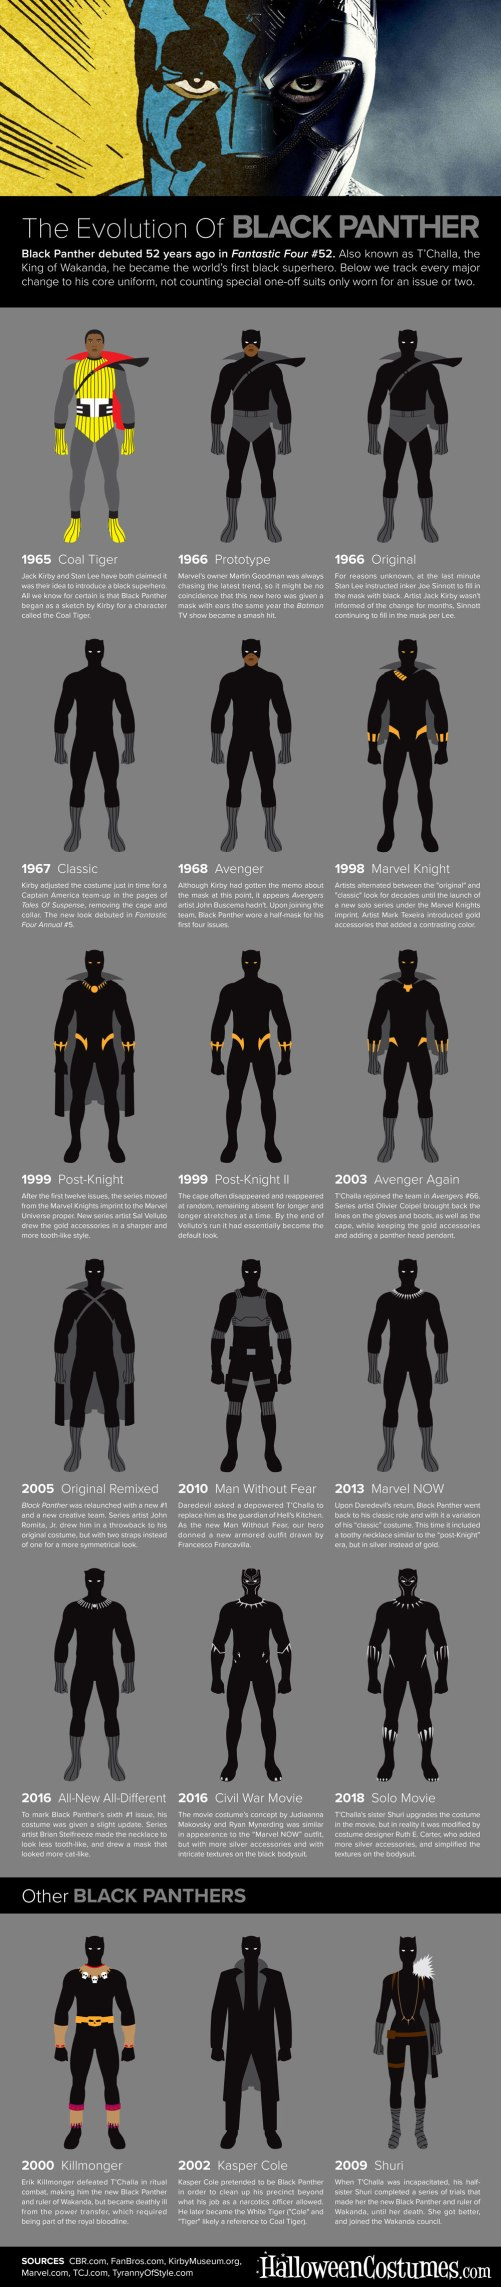 Black Panther Costumes 01